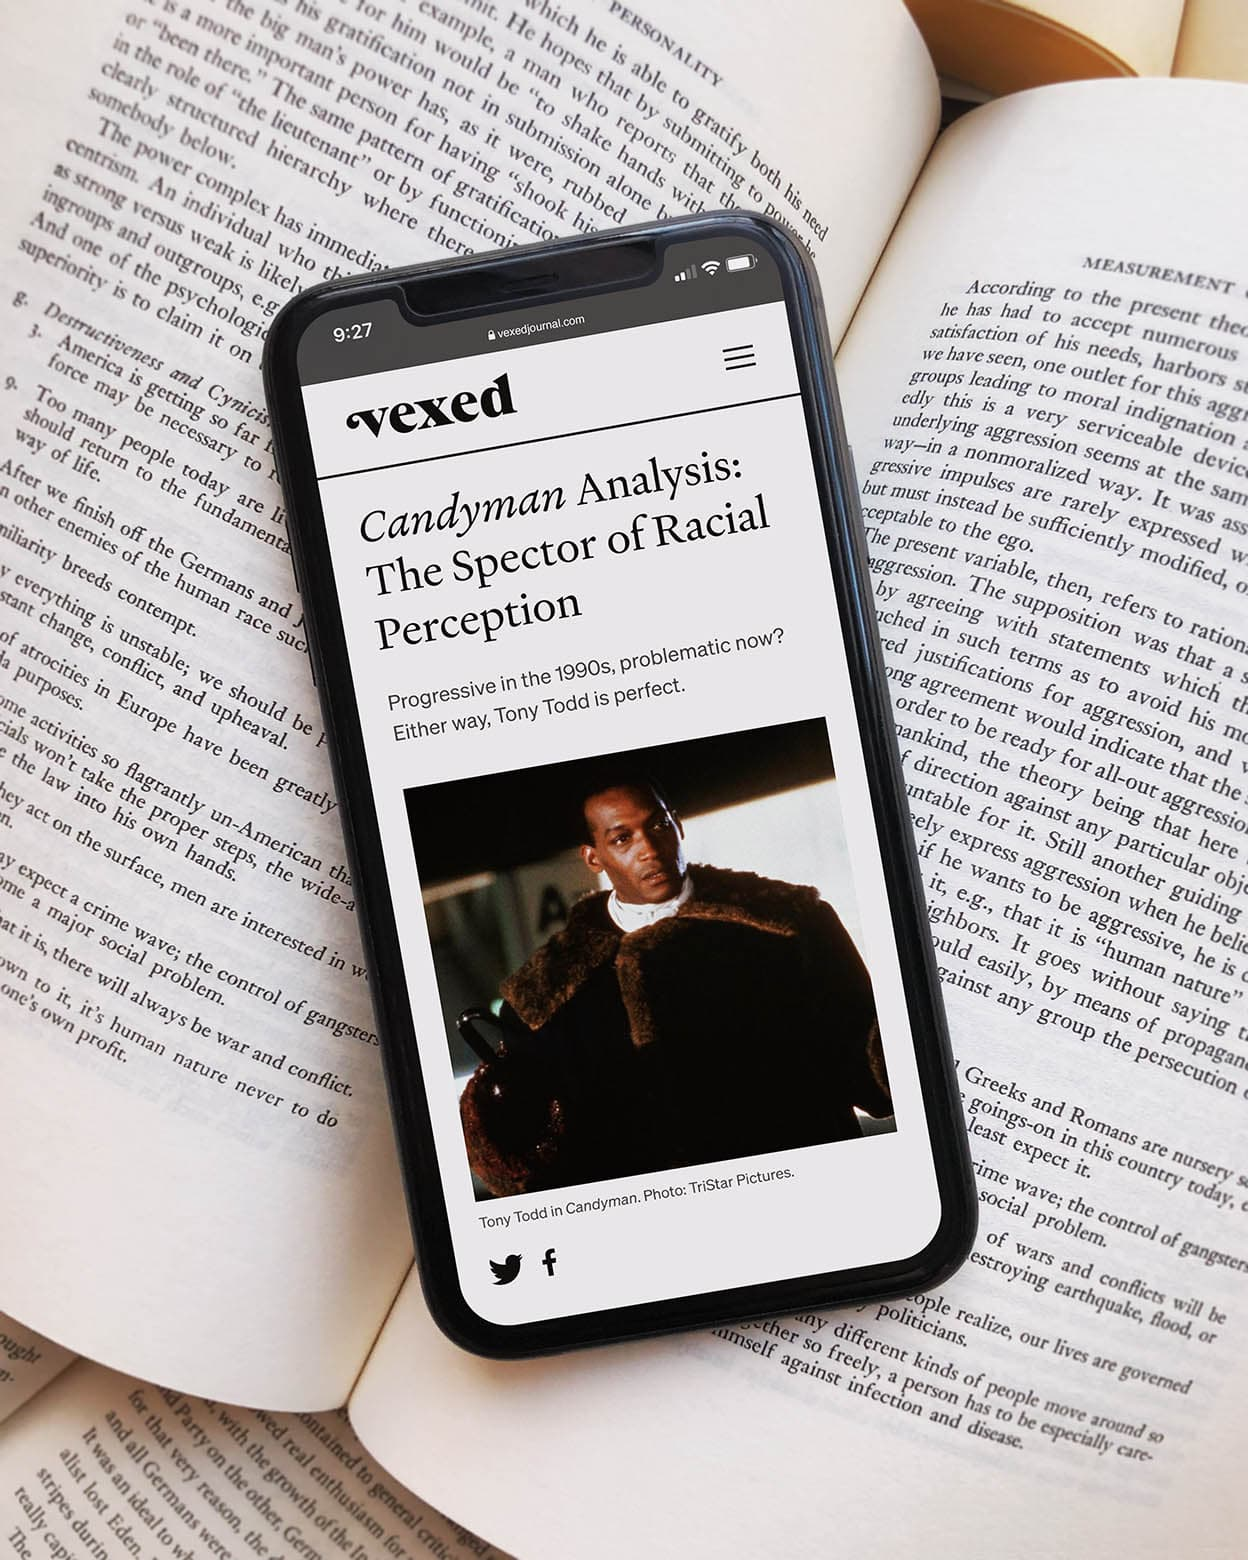 The Vexed website mocked up on a mobile phone, sitting on top of an opened history book.